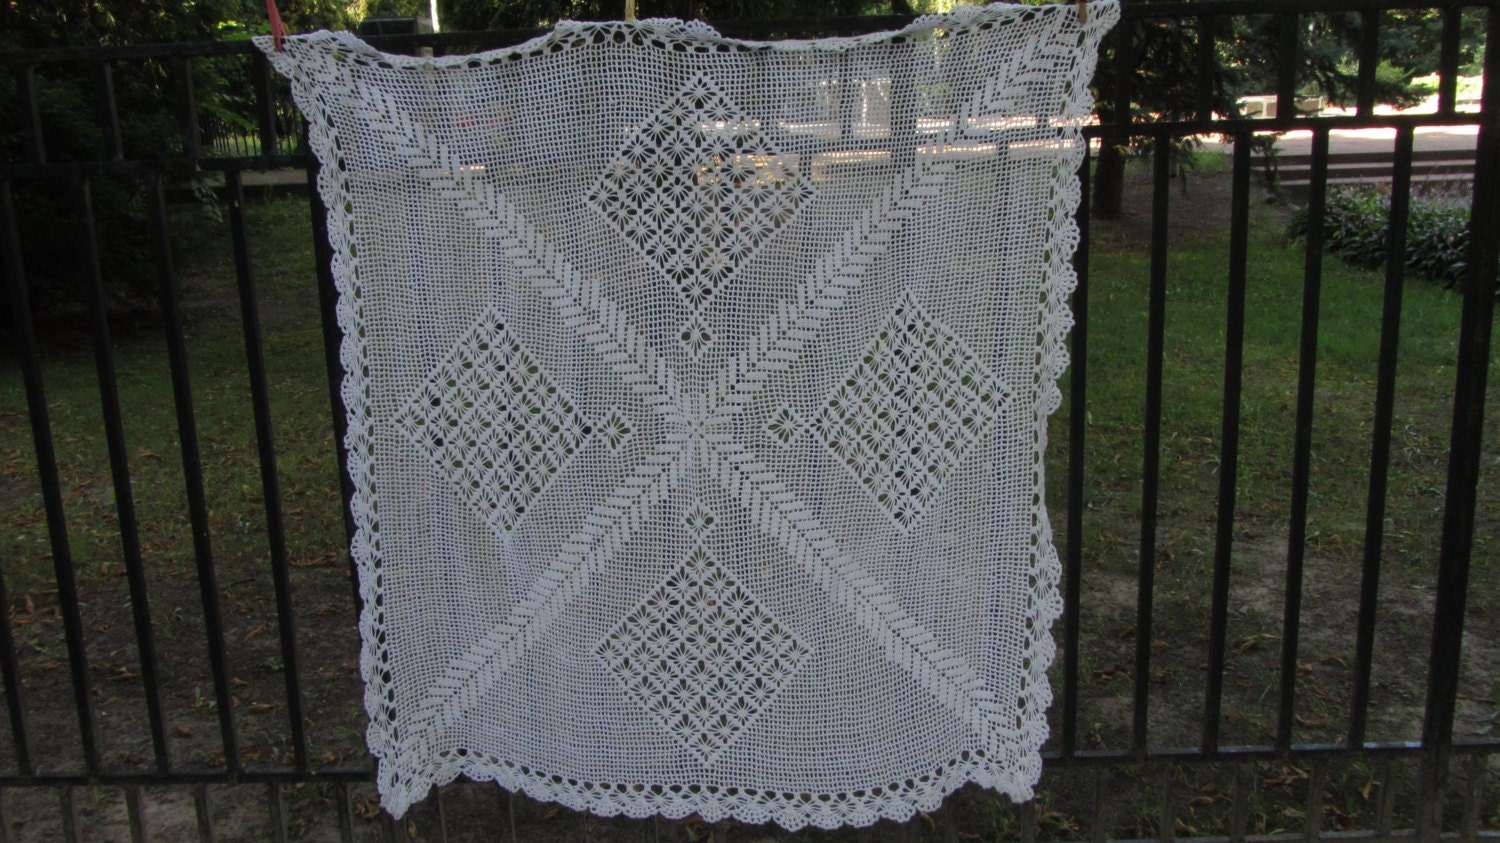 Lace White Cotton tablecloth, Handmade Lace Tablecloth, Big Bobbin Lace Round Ma